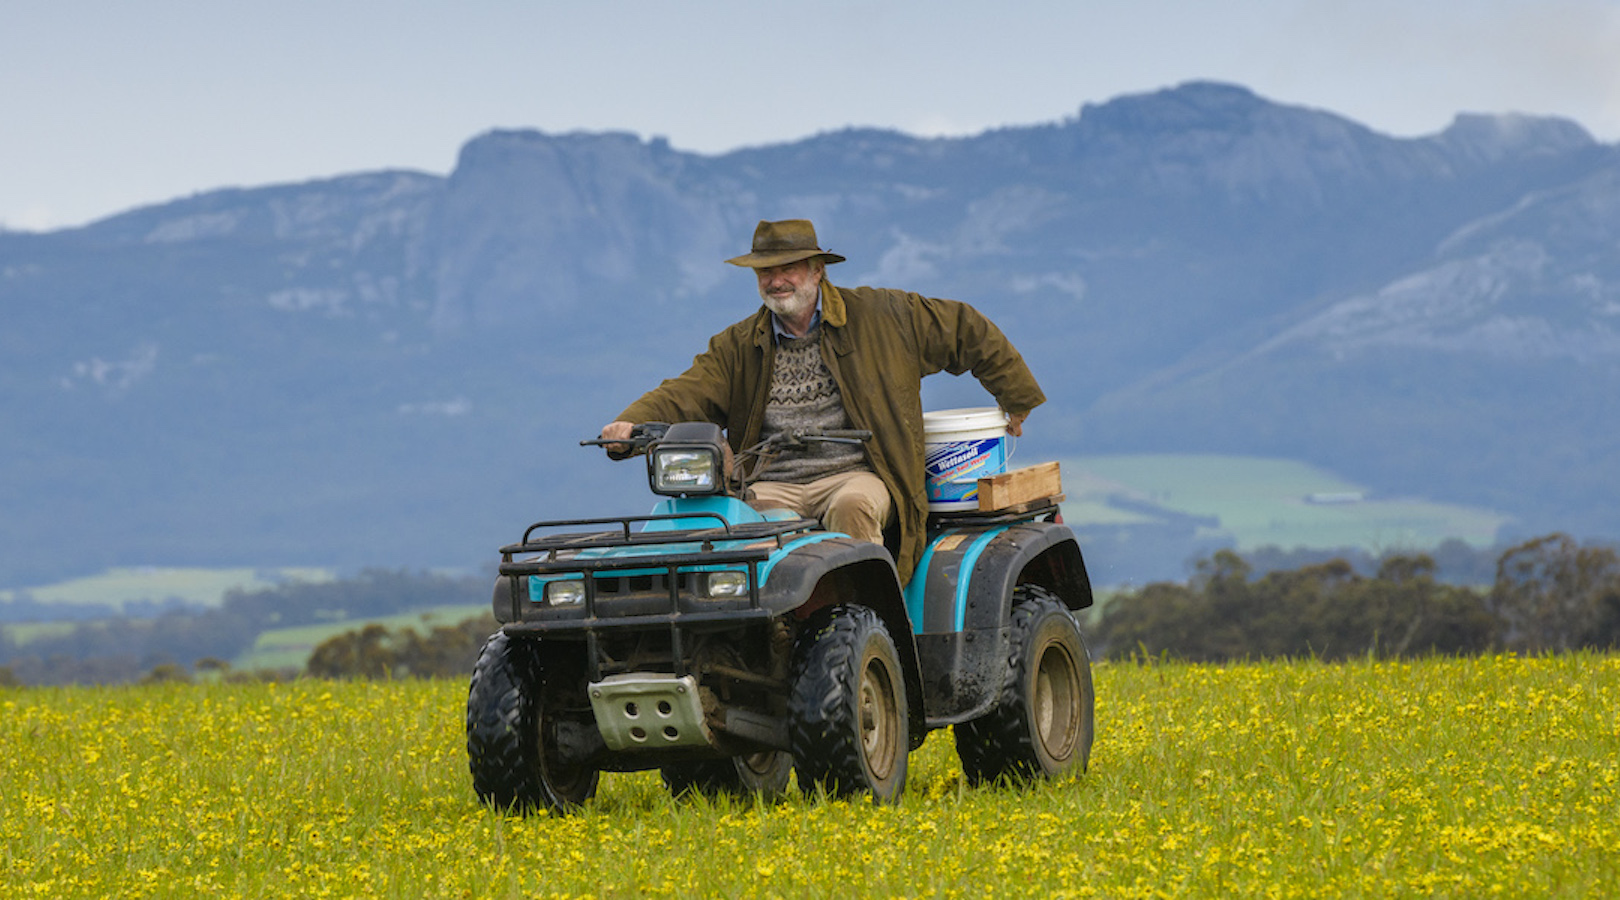 Sam Neill, atop a quad bike in typical faming gear and a broad brimmed hat, drives across a field of yellow wildflowers, with the Porongurup range in the background